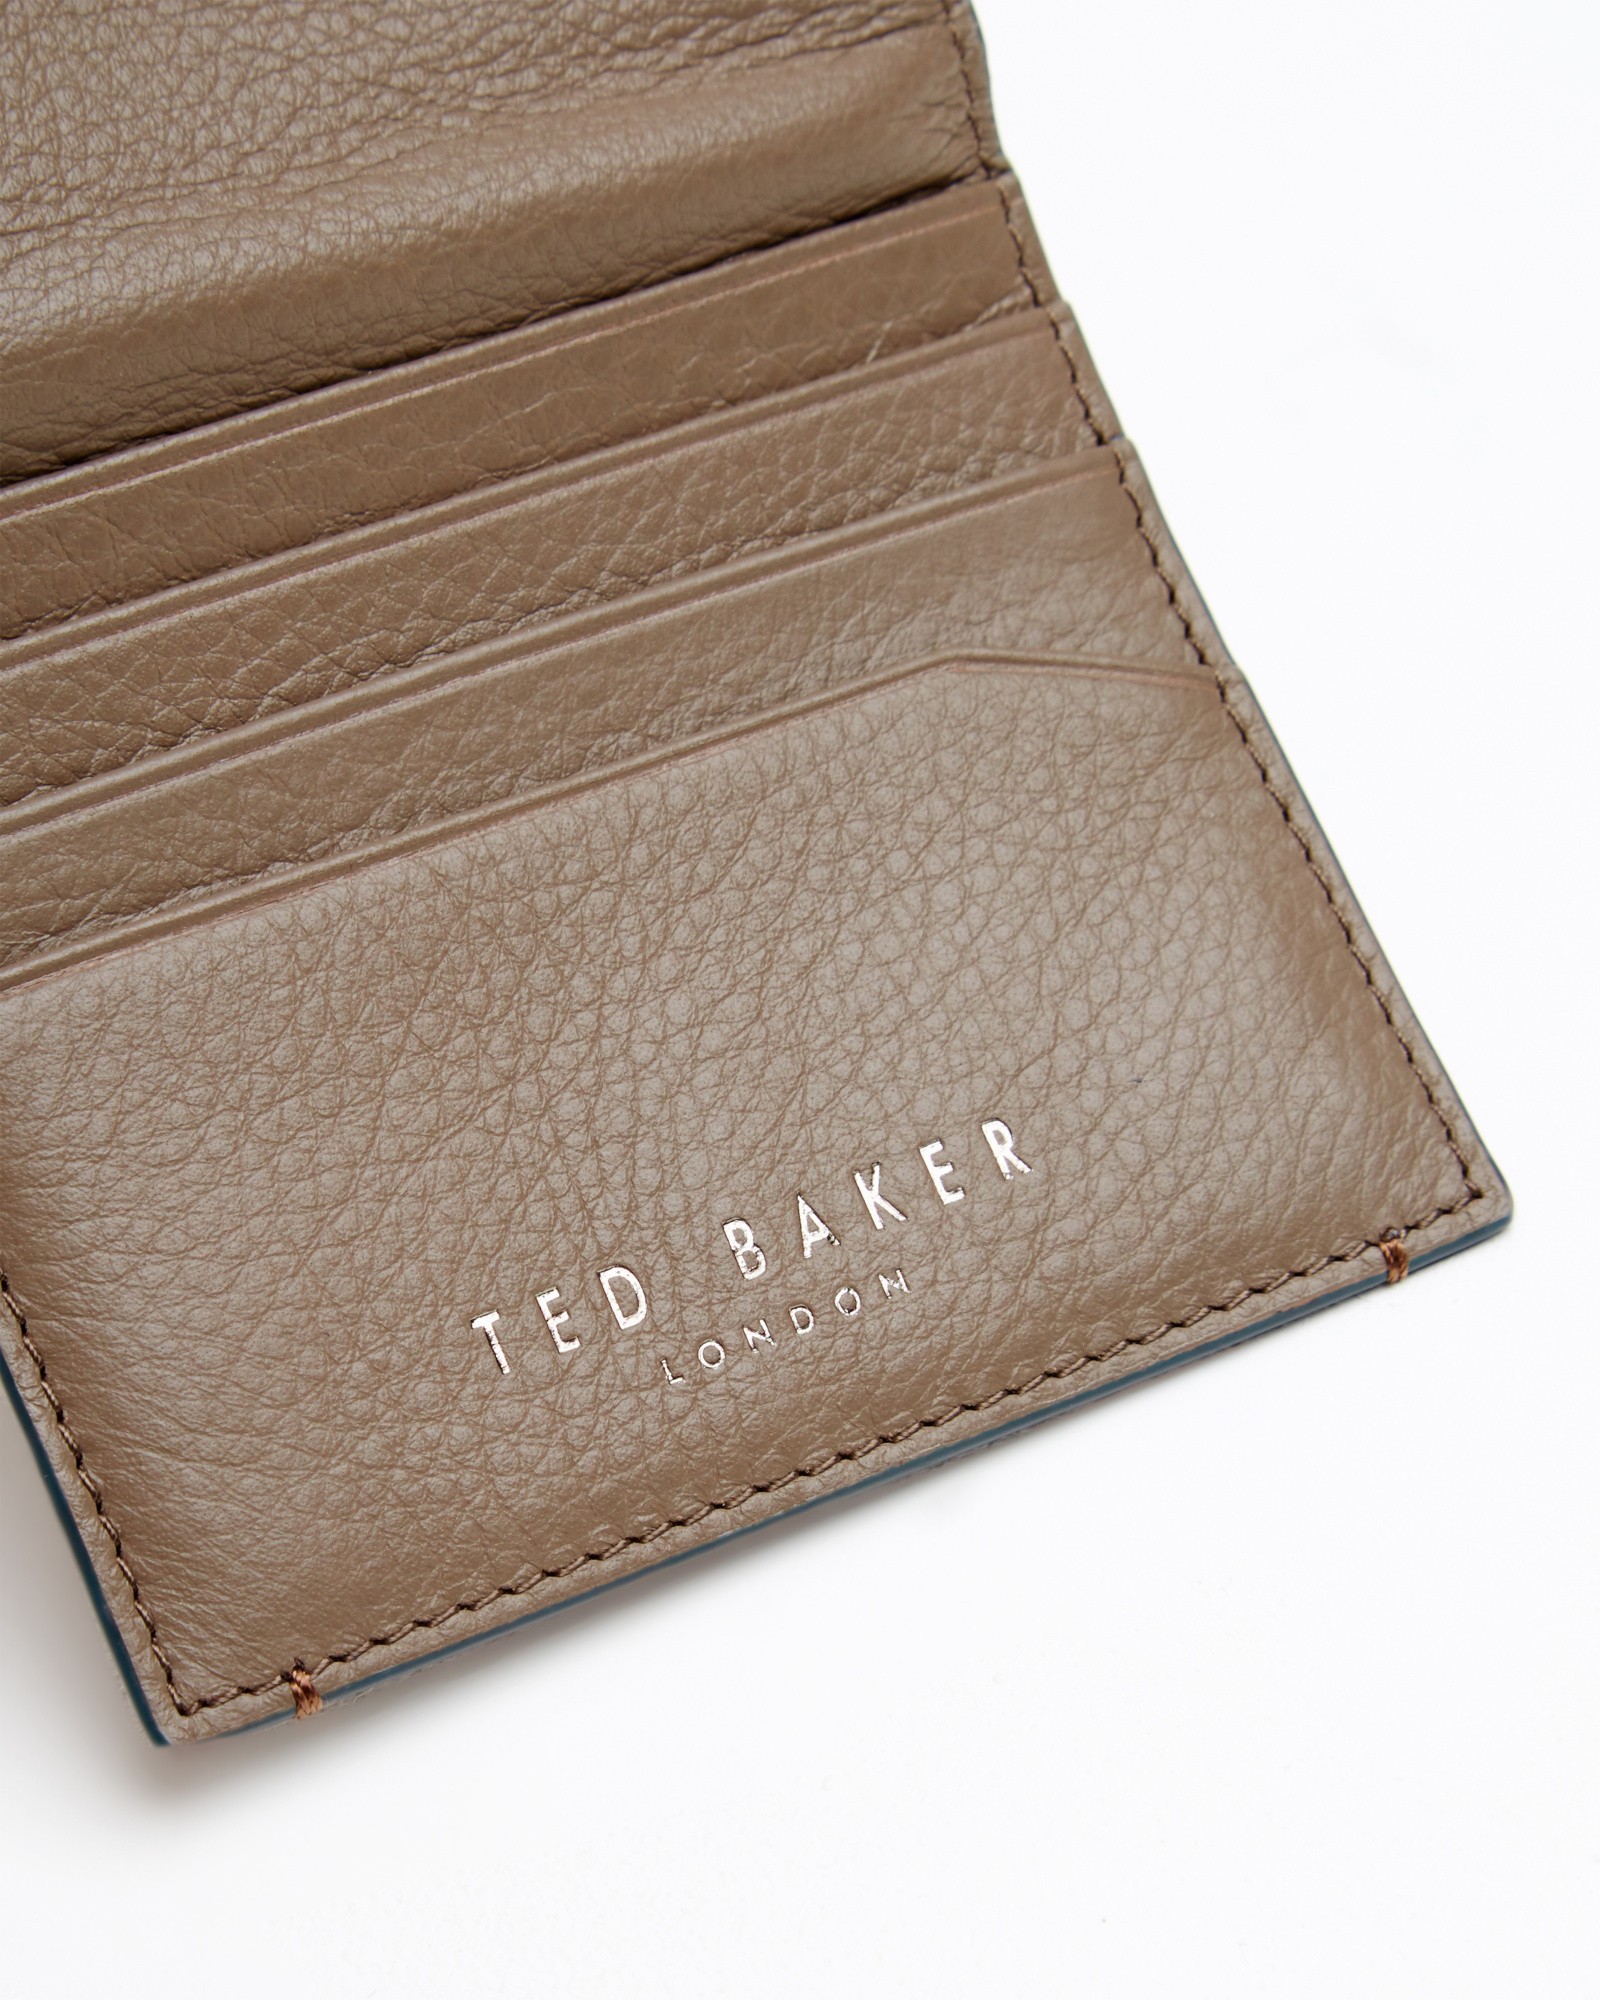 c6869cdcdf8896 Ted Baker Contrast Edge Card Holder in Brown for Men - Lyst